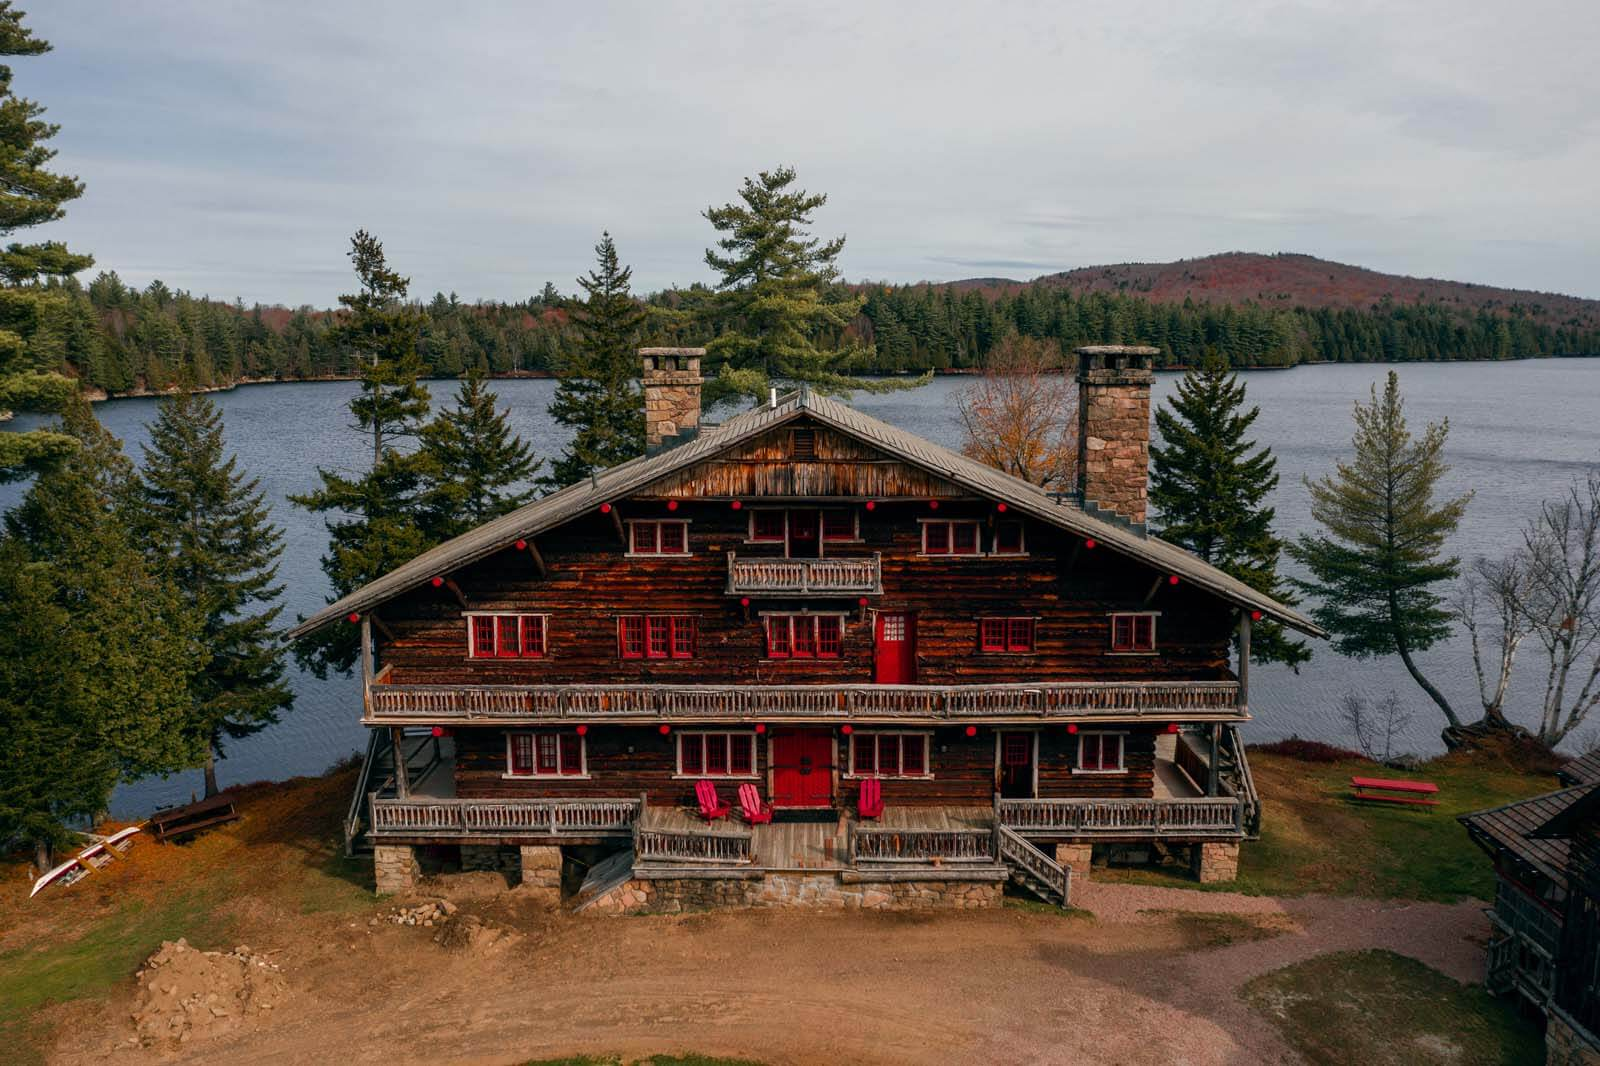 Great Camp Sagamore on Sagamore Lake in the Adirondacks New York